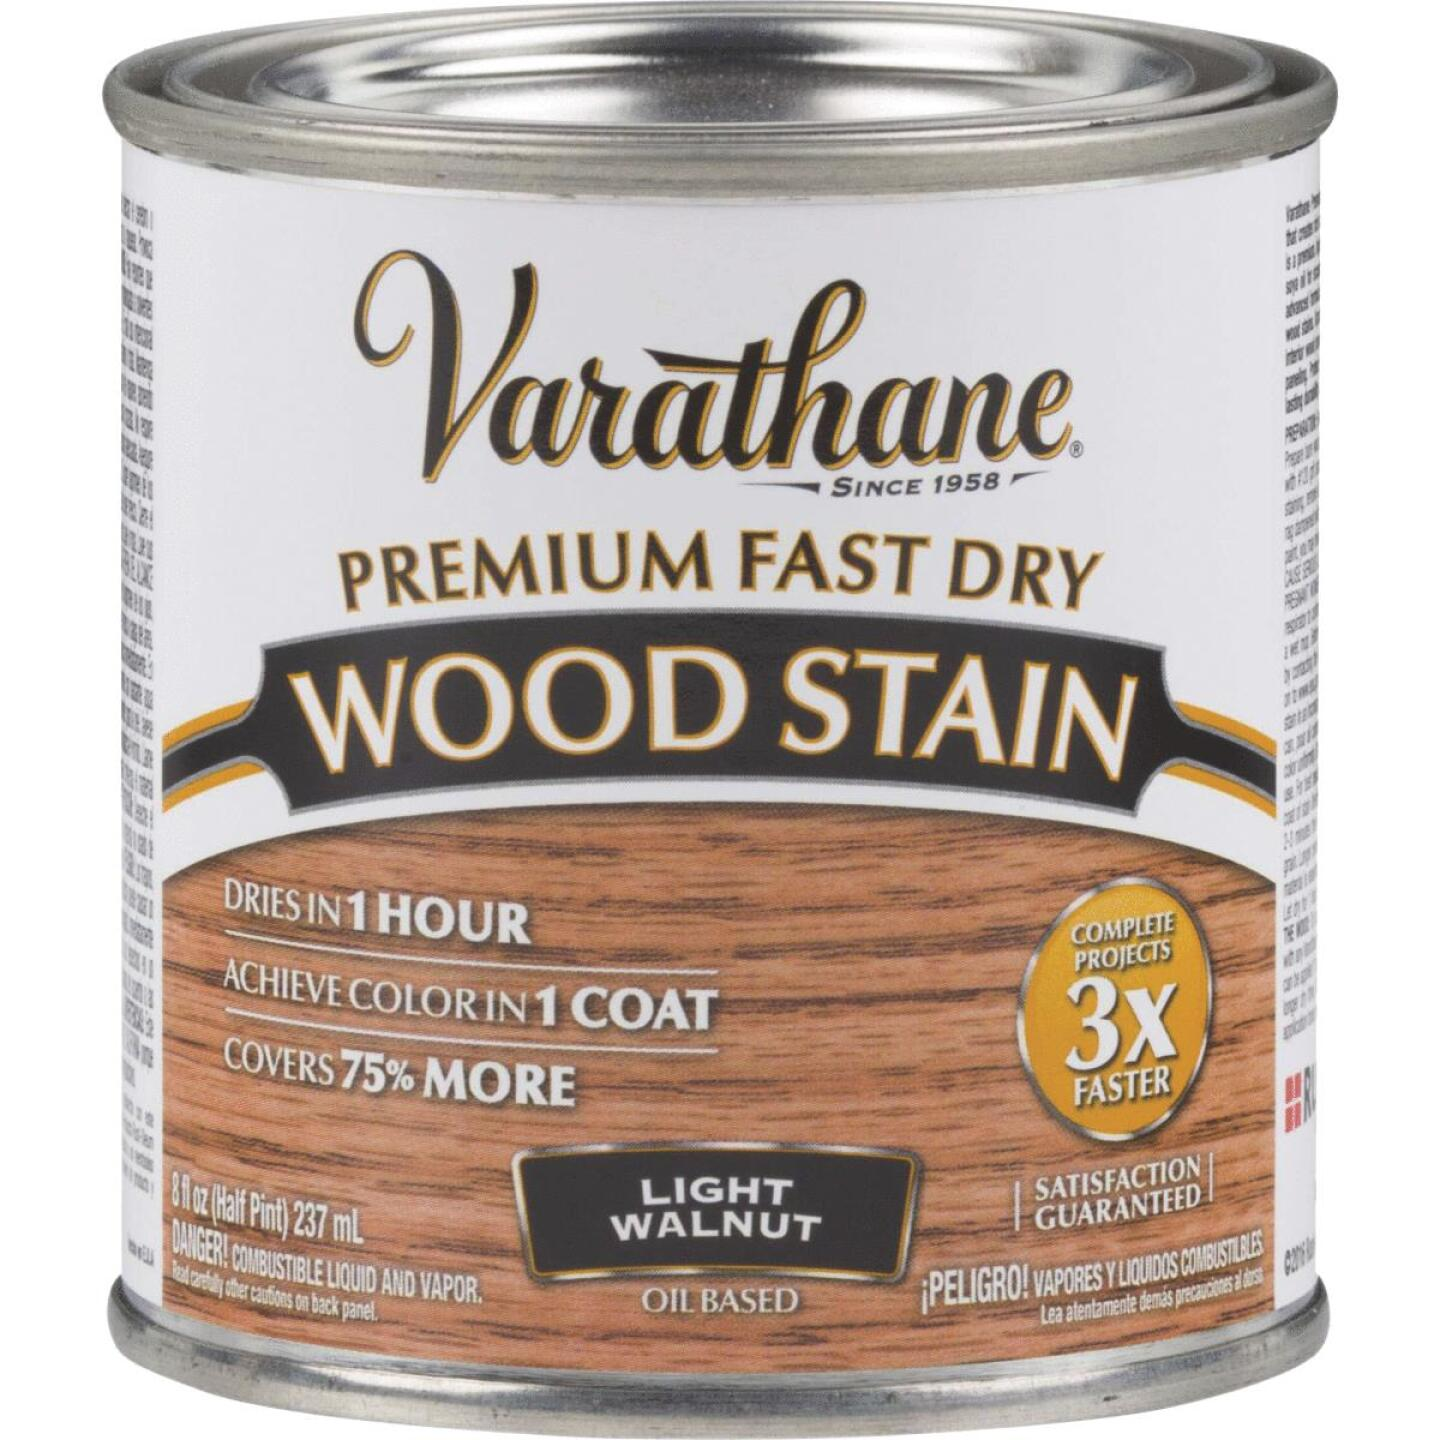 Varathane Fast Dry Light Walnut Urethane Modified Alkyd Interior Wood Stain, 1/2 Pt. Image 1